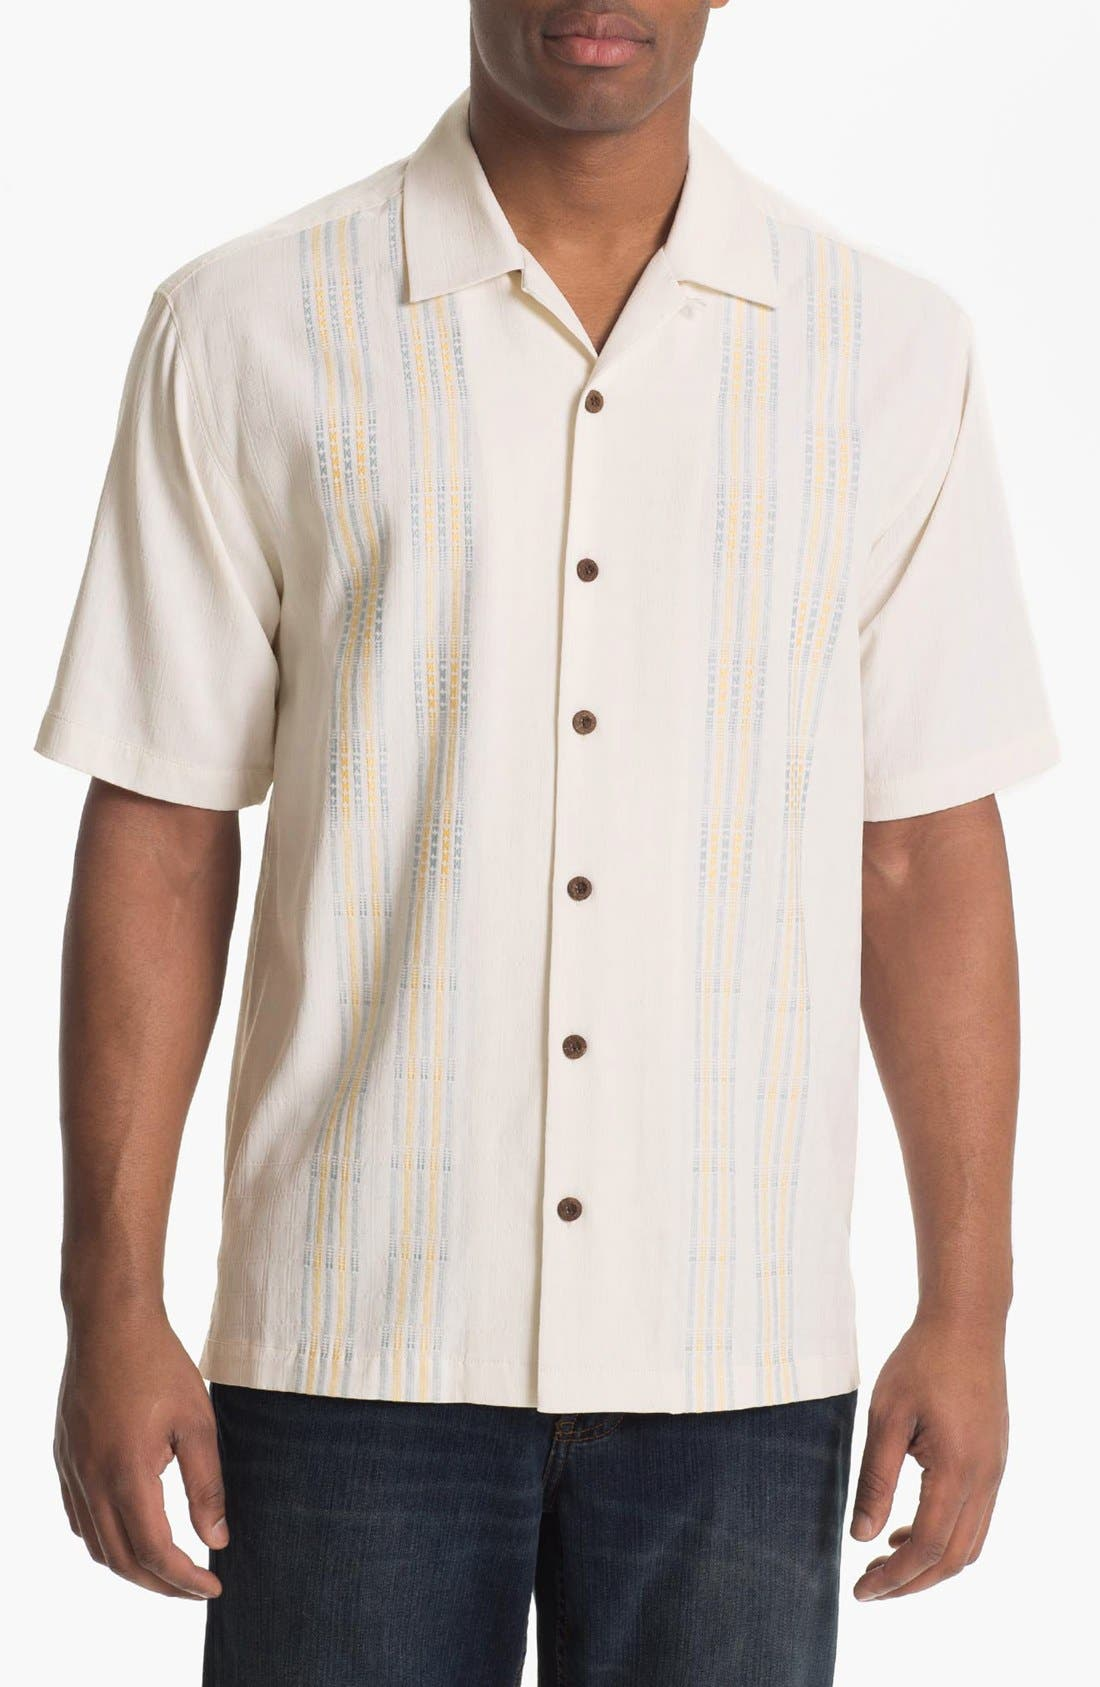 Alternate Image 1 Selected - Tommy Bahama 'Four Amigos' Silk Campshirt (Big & Tall)